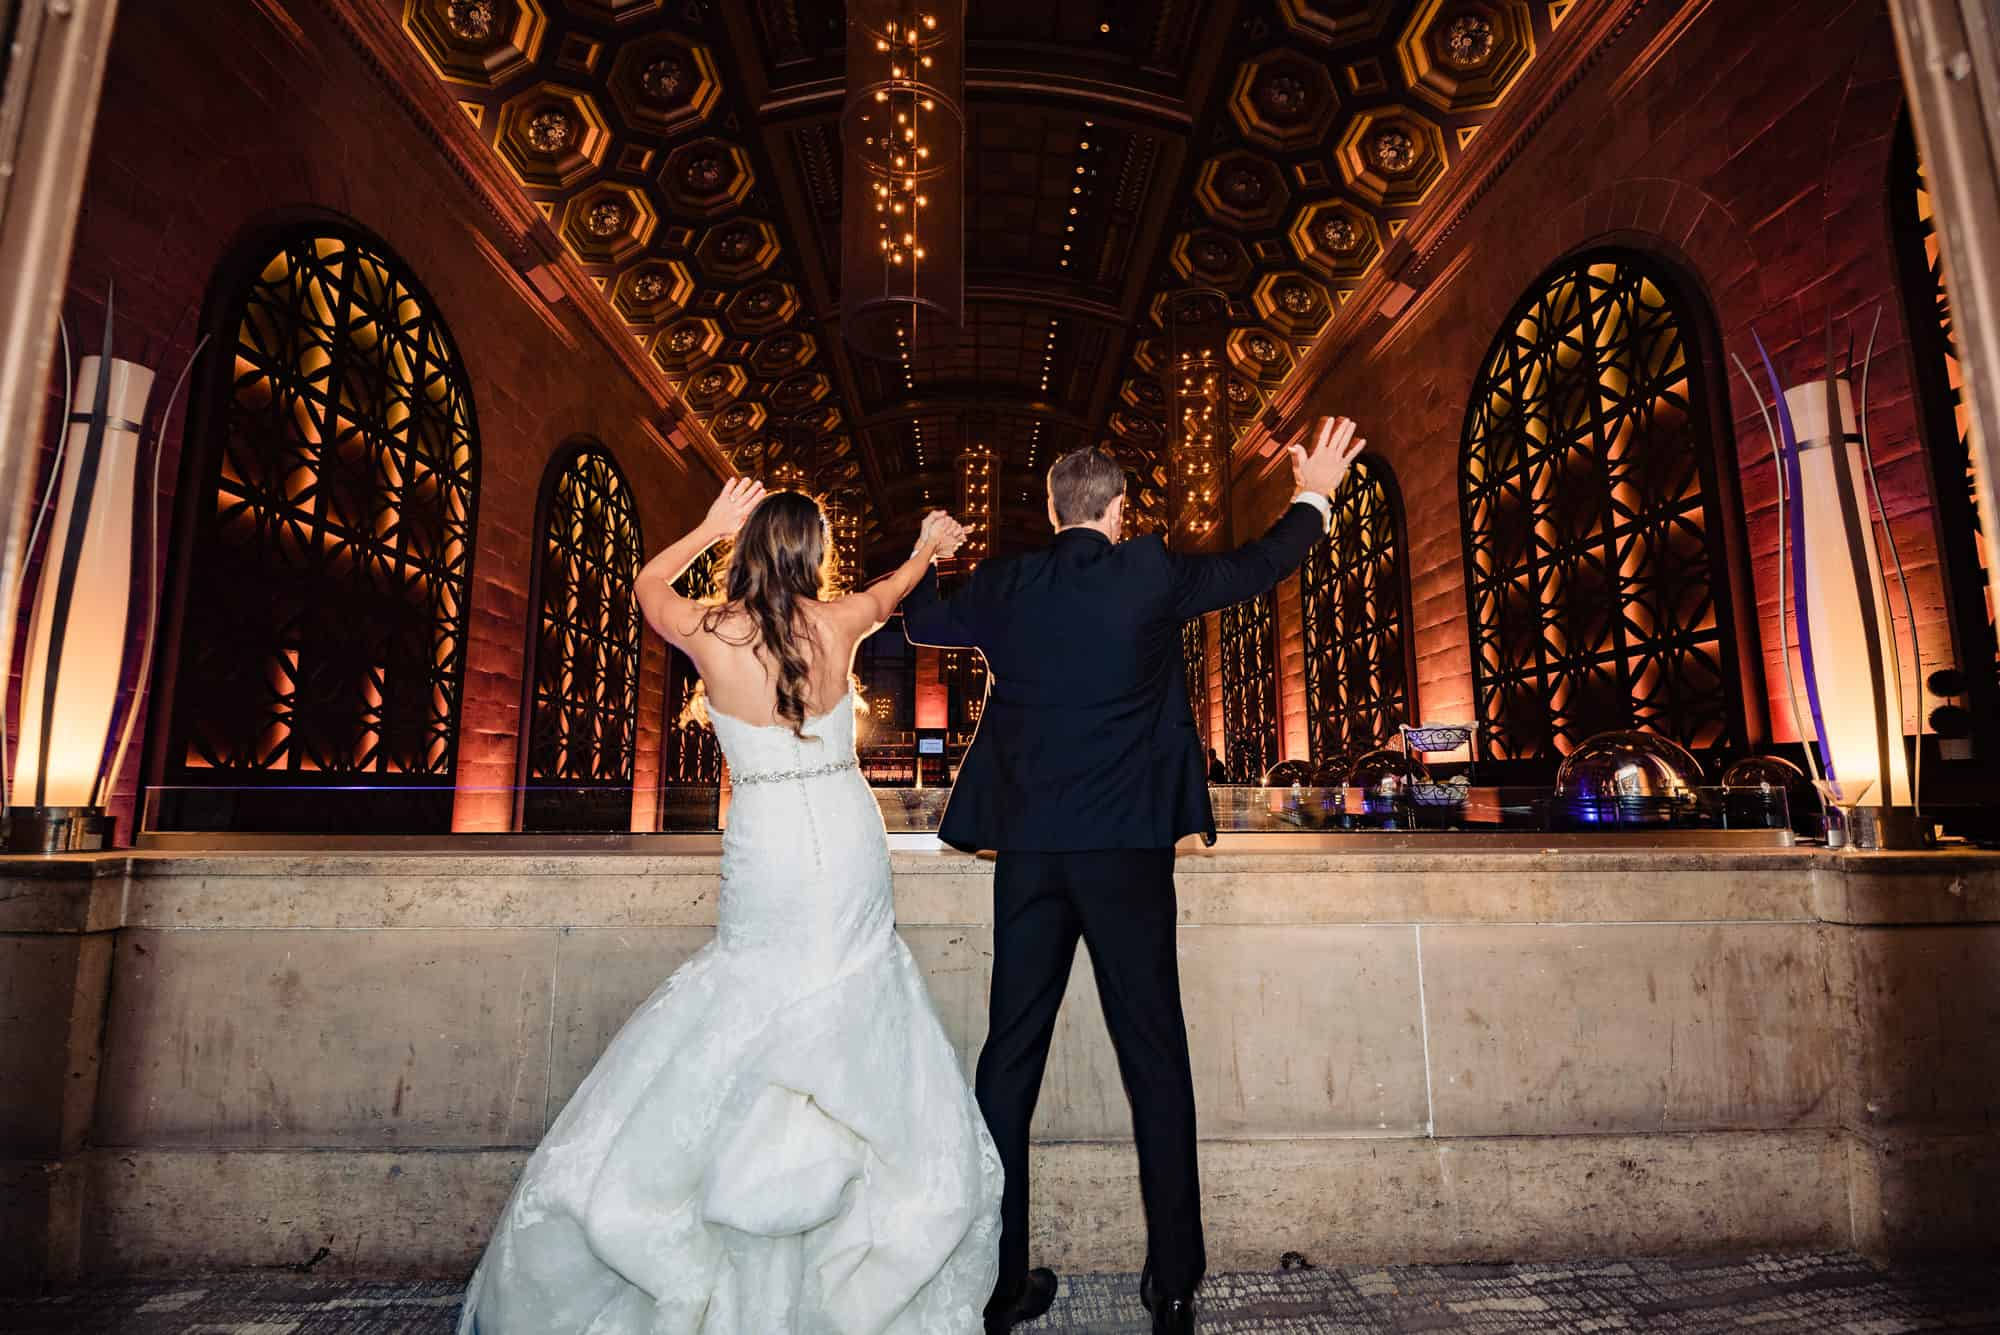 bride and groom celebrate at their Union Trust Ballroom wedding reception